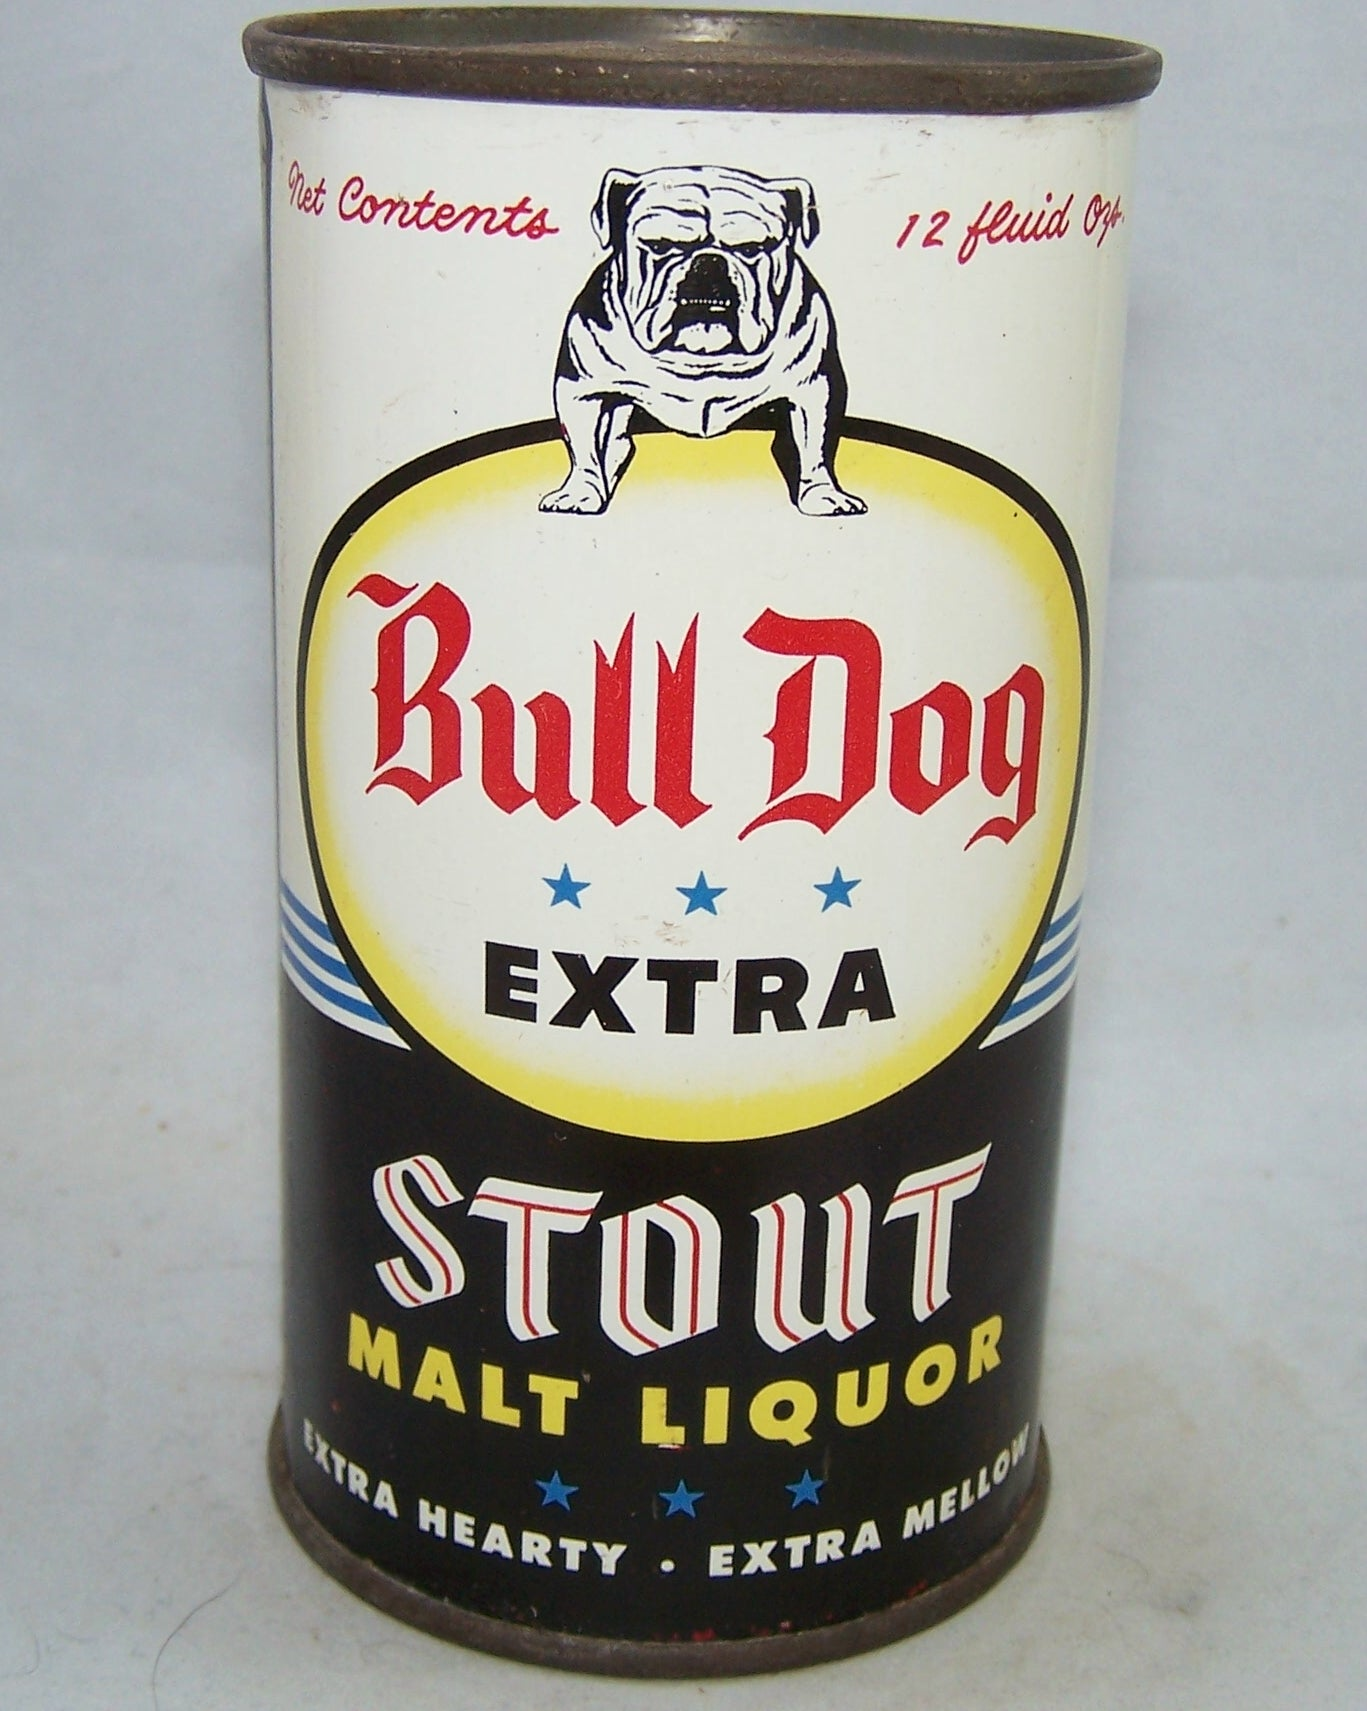 Bull Dog Stout Malt Liquor, USBC 45-25, Grade 1/1+